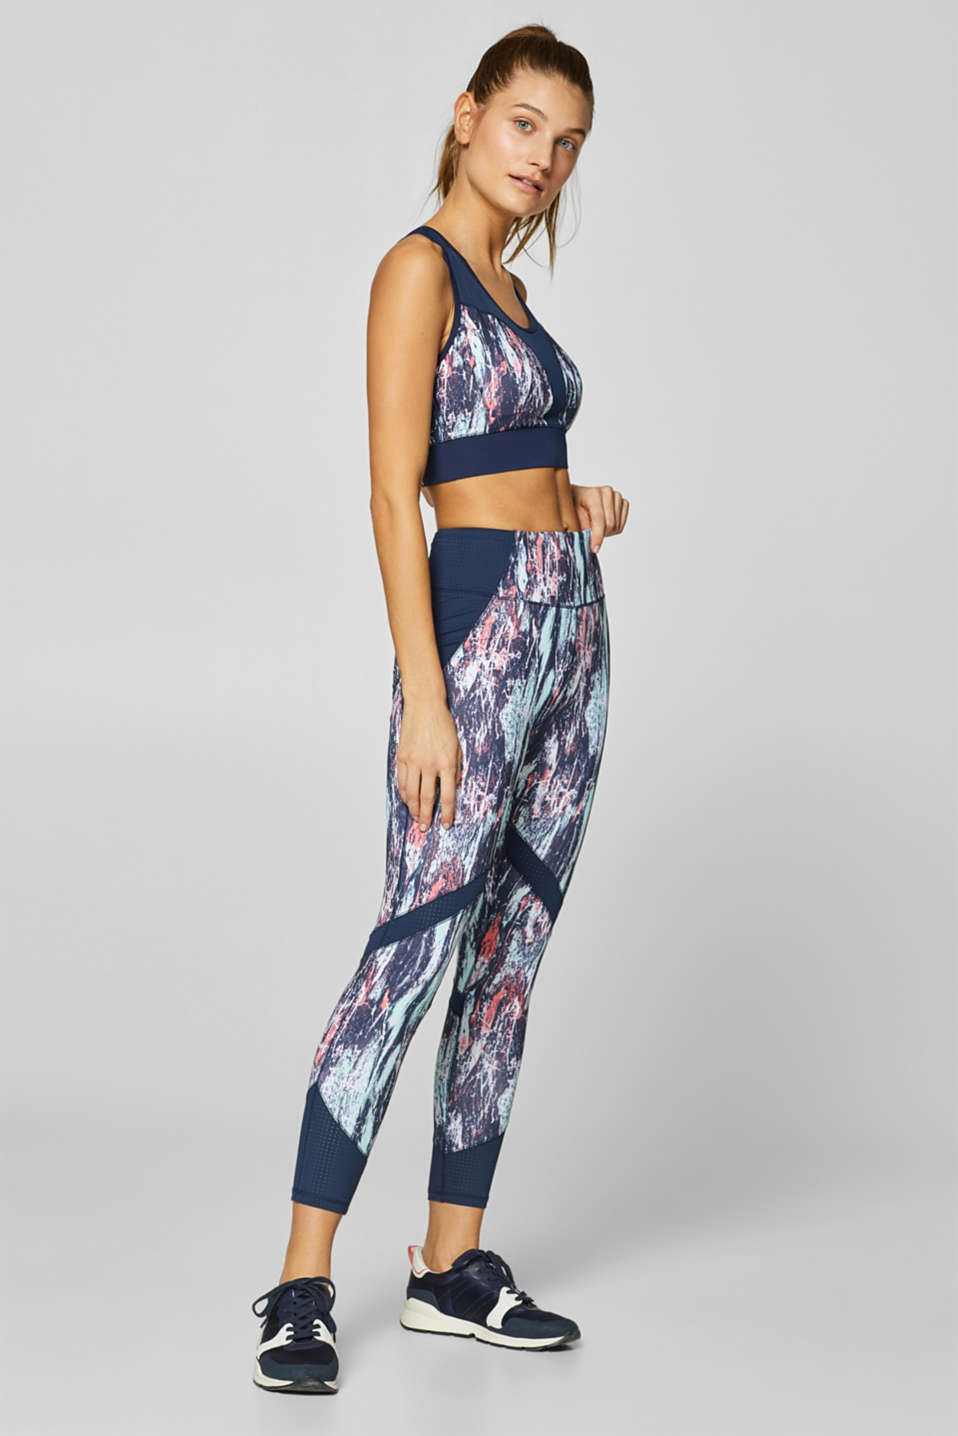 Esprit - Leggings active con stampa di graffiti, E-DRY